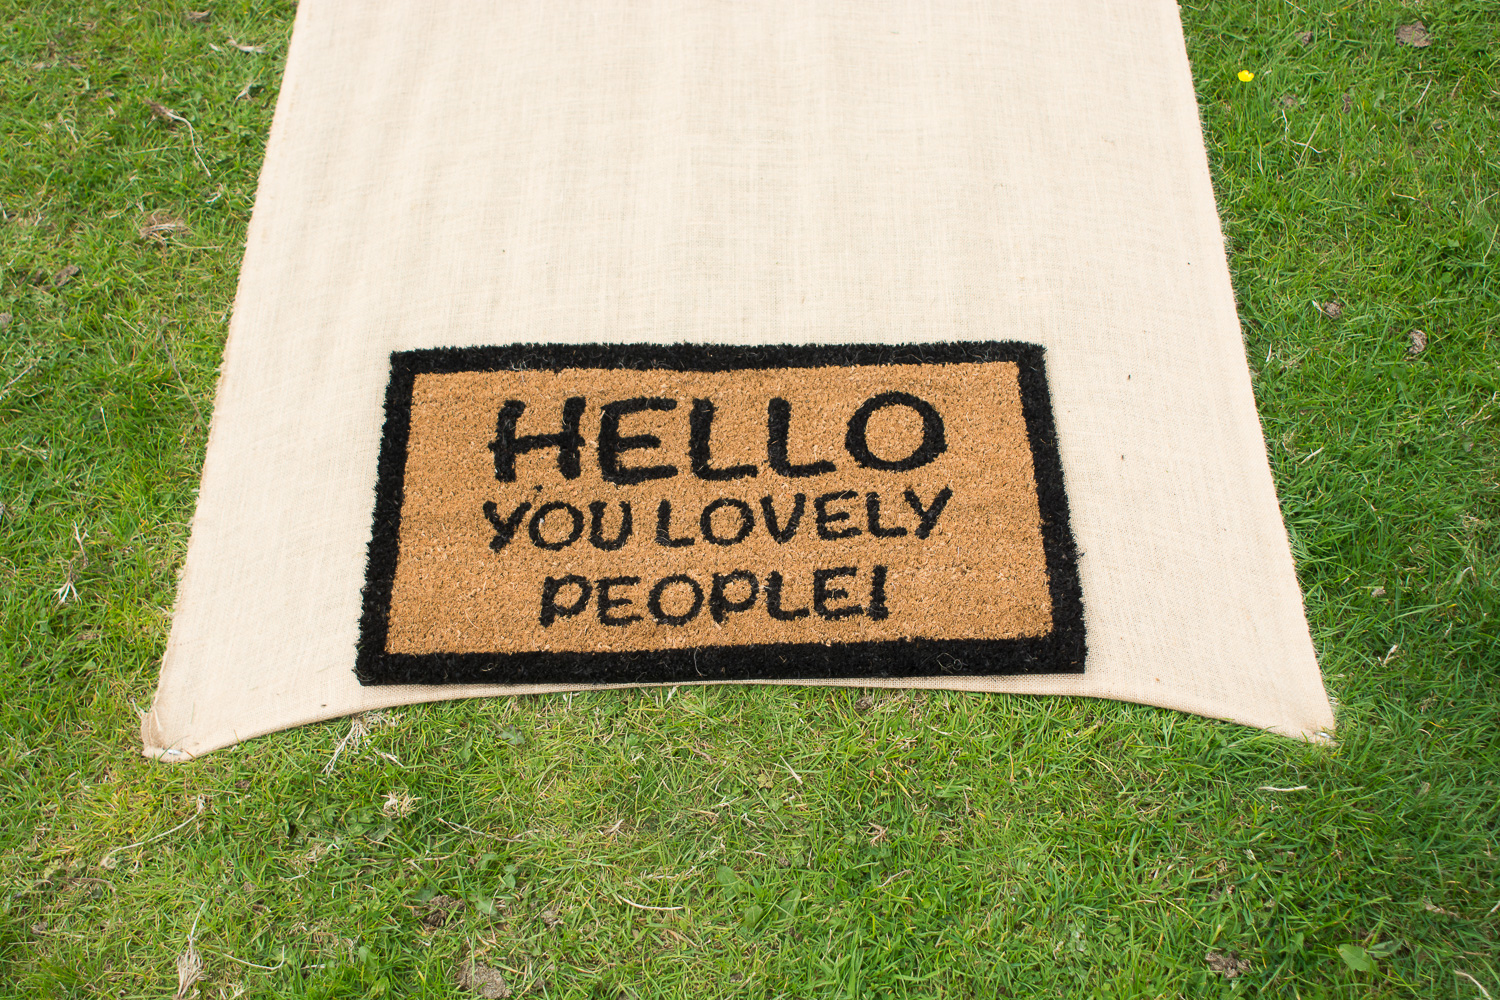 outside door mat reads, Hello you lovely people in woolacombe